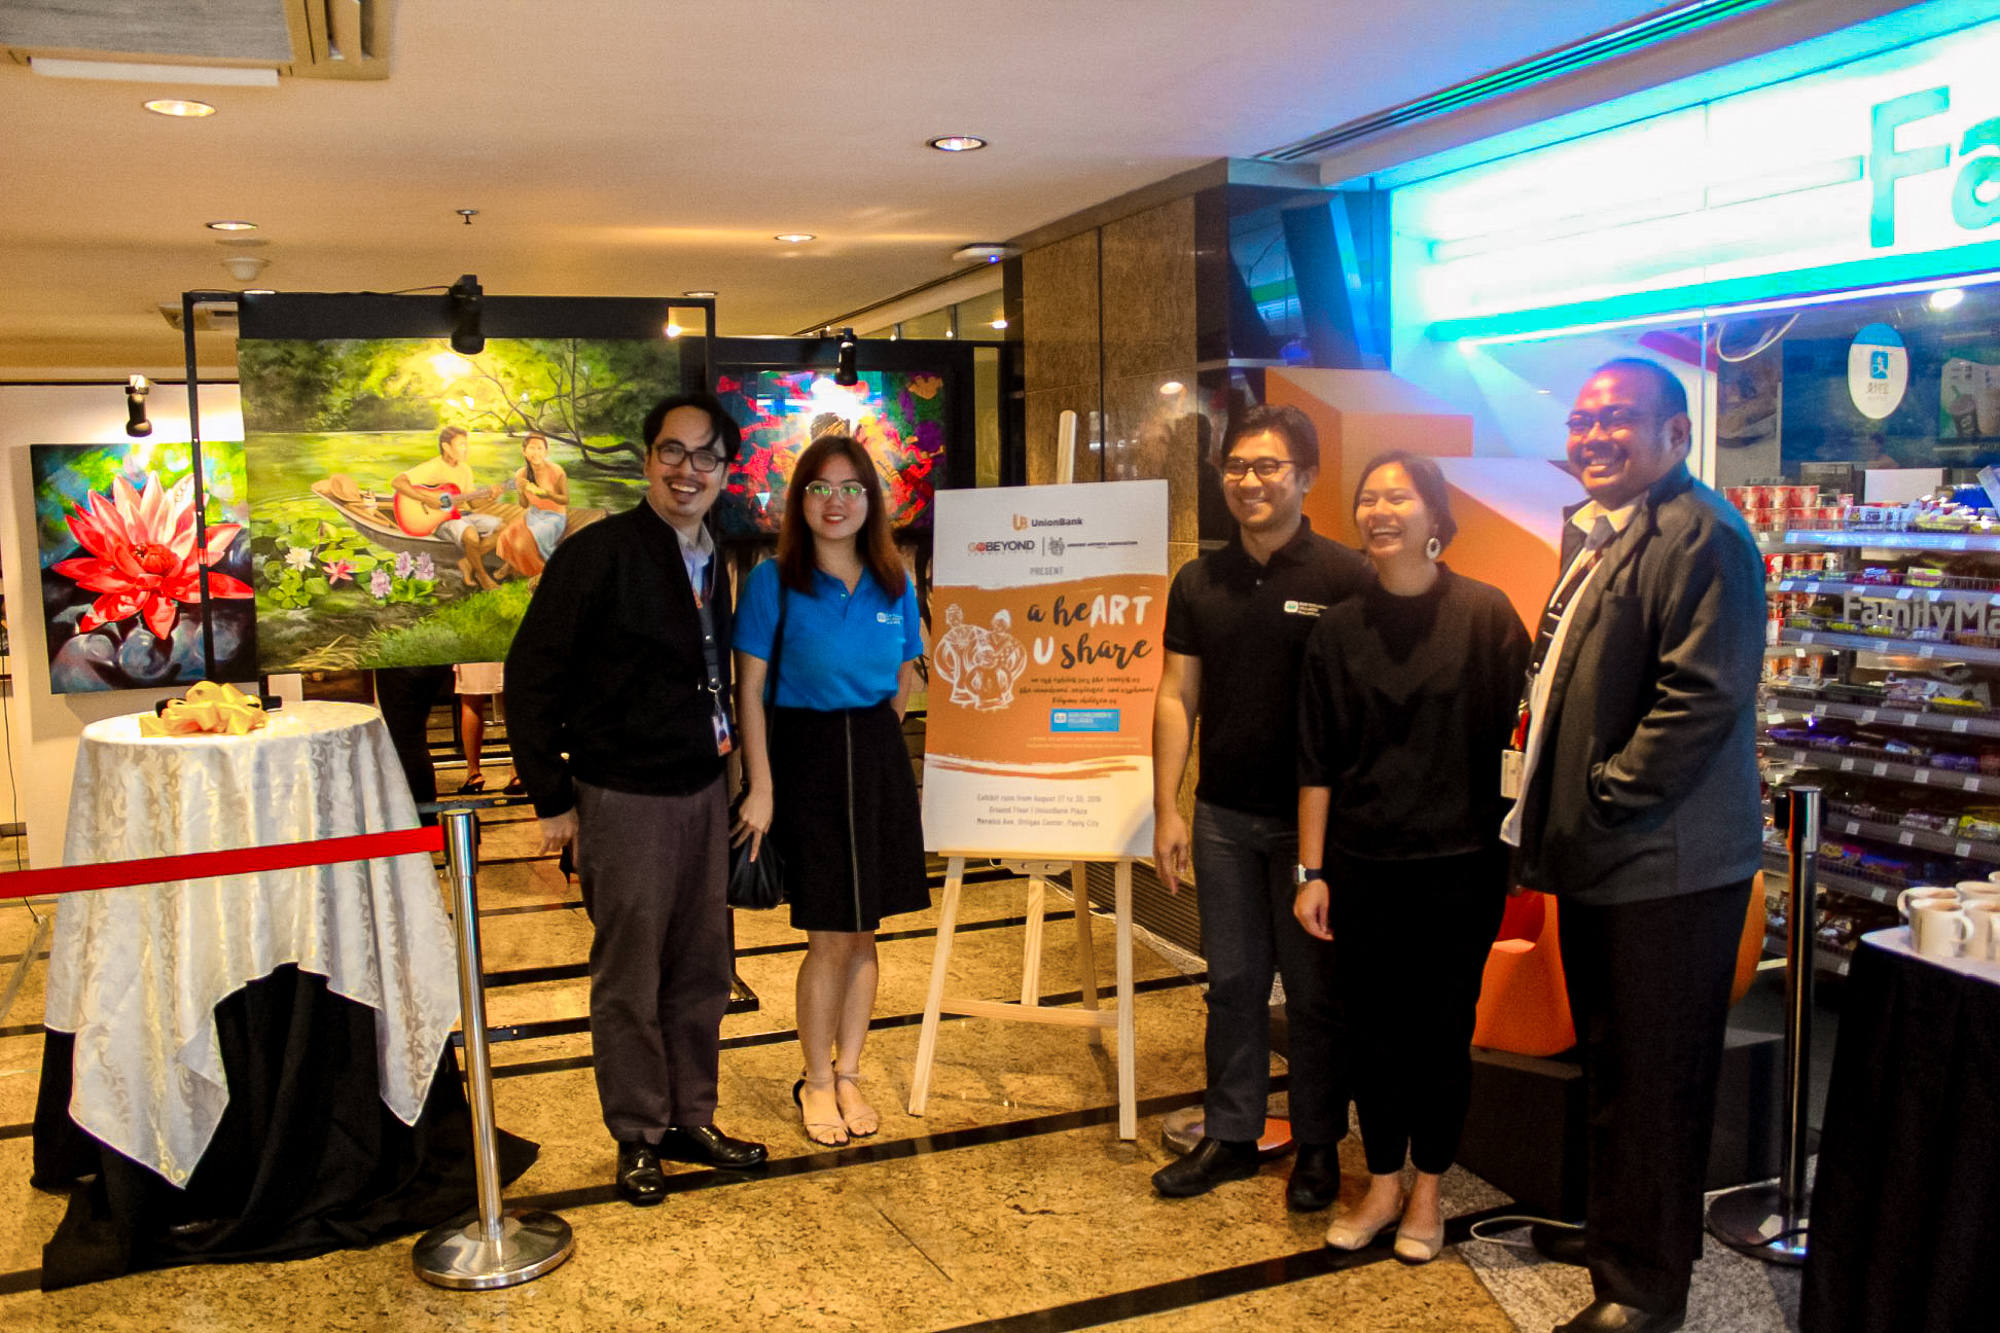 (From left) Kim Unidad, SOS Children's Villages Corporate Relations officers Ruth Angeli Pascua and Admore Alzate, UnionBank CSR Manager Ilene Geronimo, and UnionBank General Services Officer John Leslie Andres